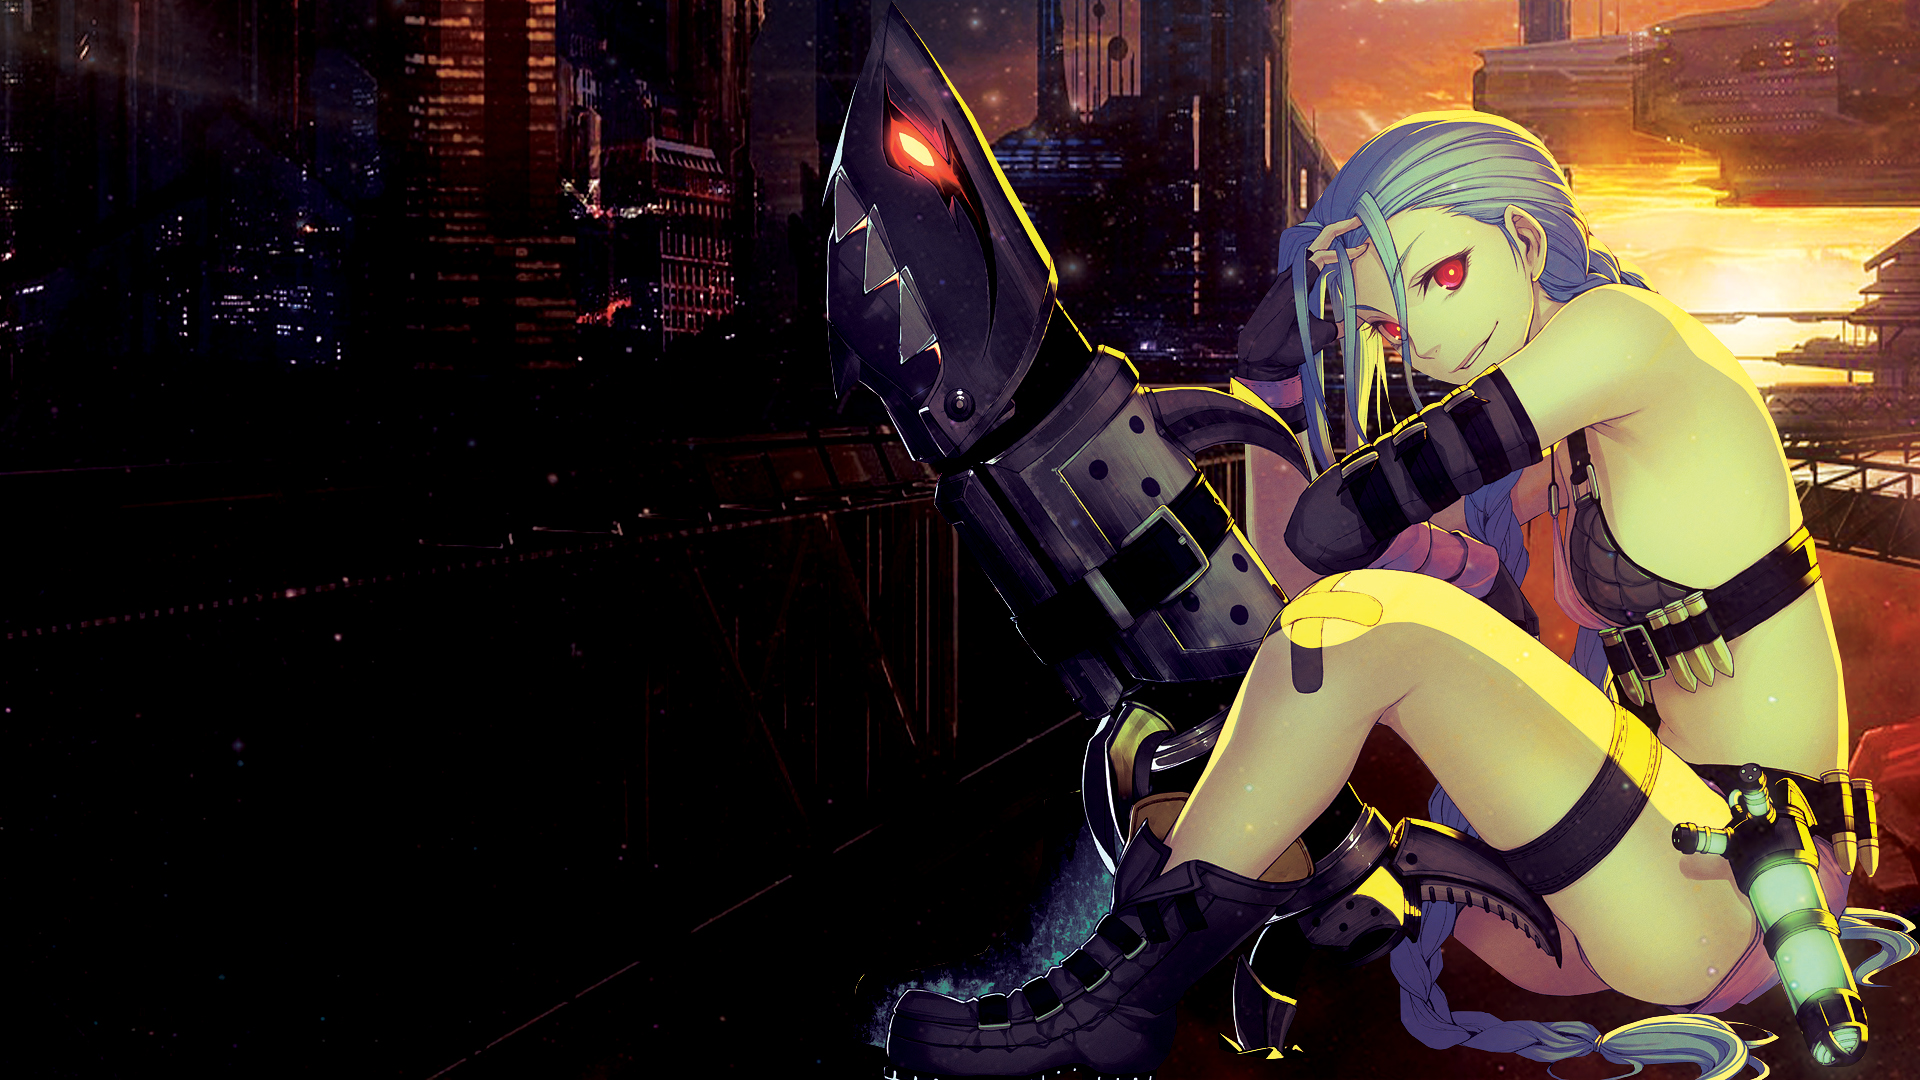 League Of Legends Jinx The Loose Cannon By Nightfall1007 On